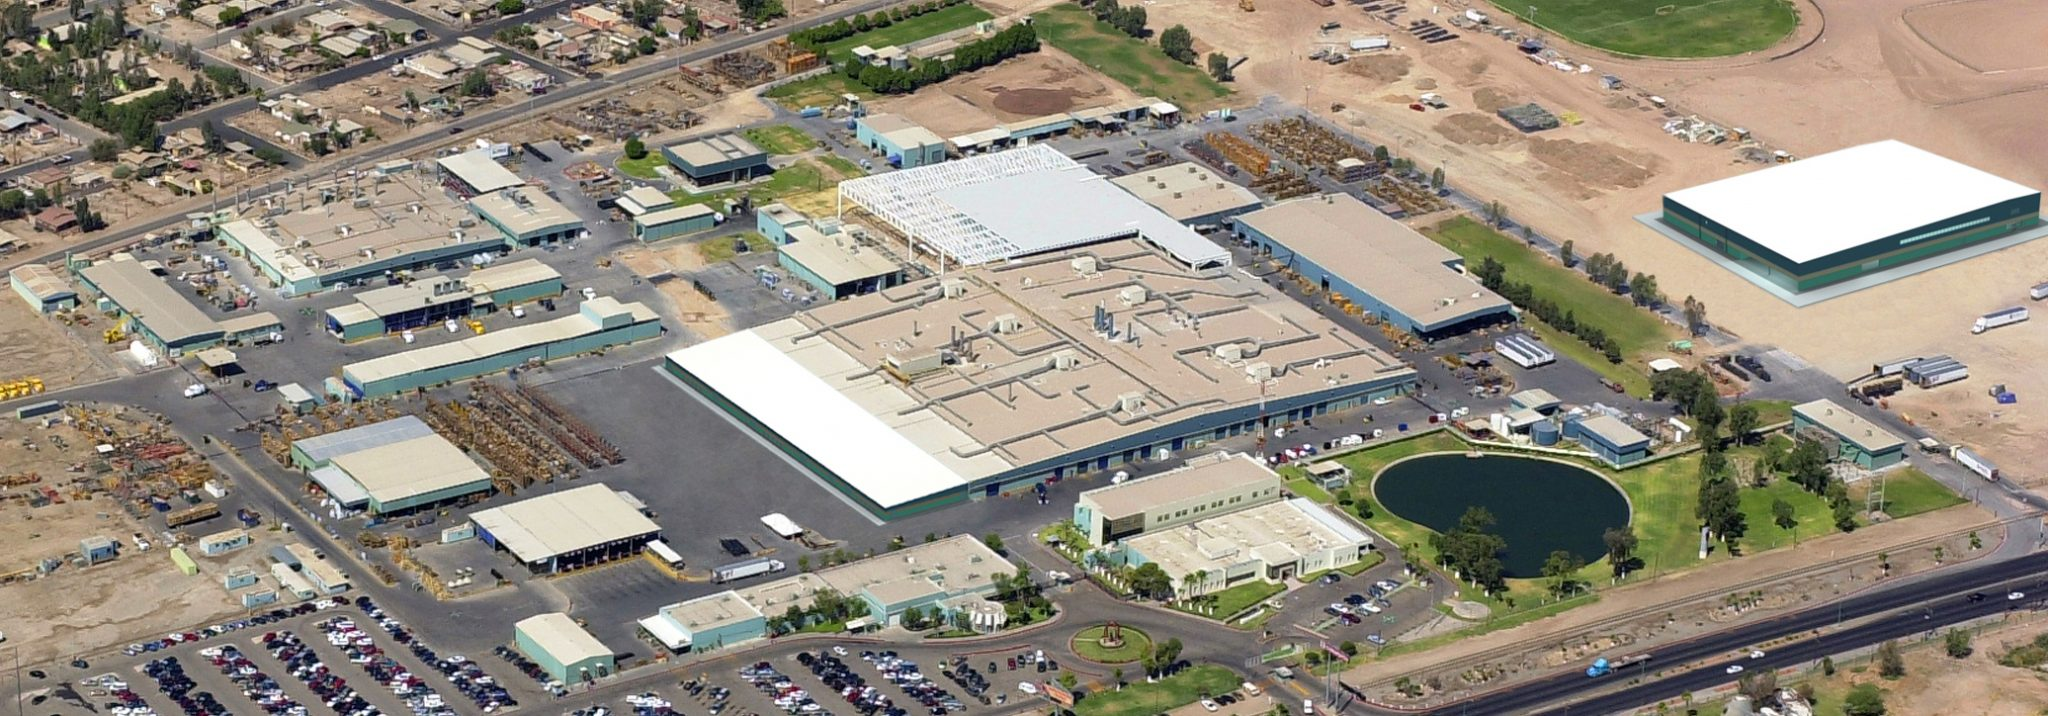 Aerial shot of Kenworth Paccar industrial facility in Mexicali, Baja California.